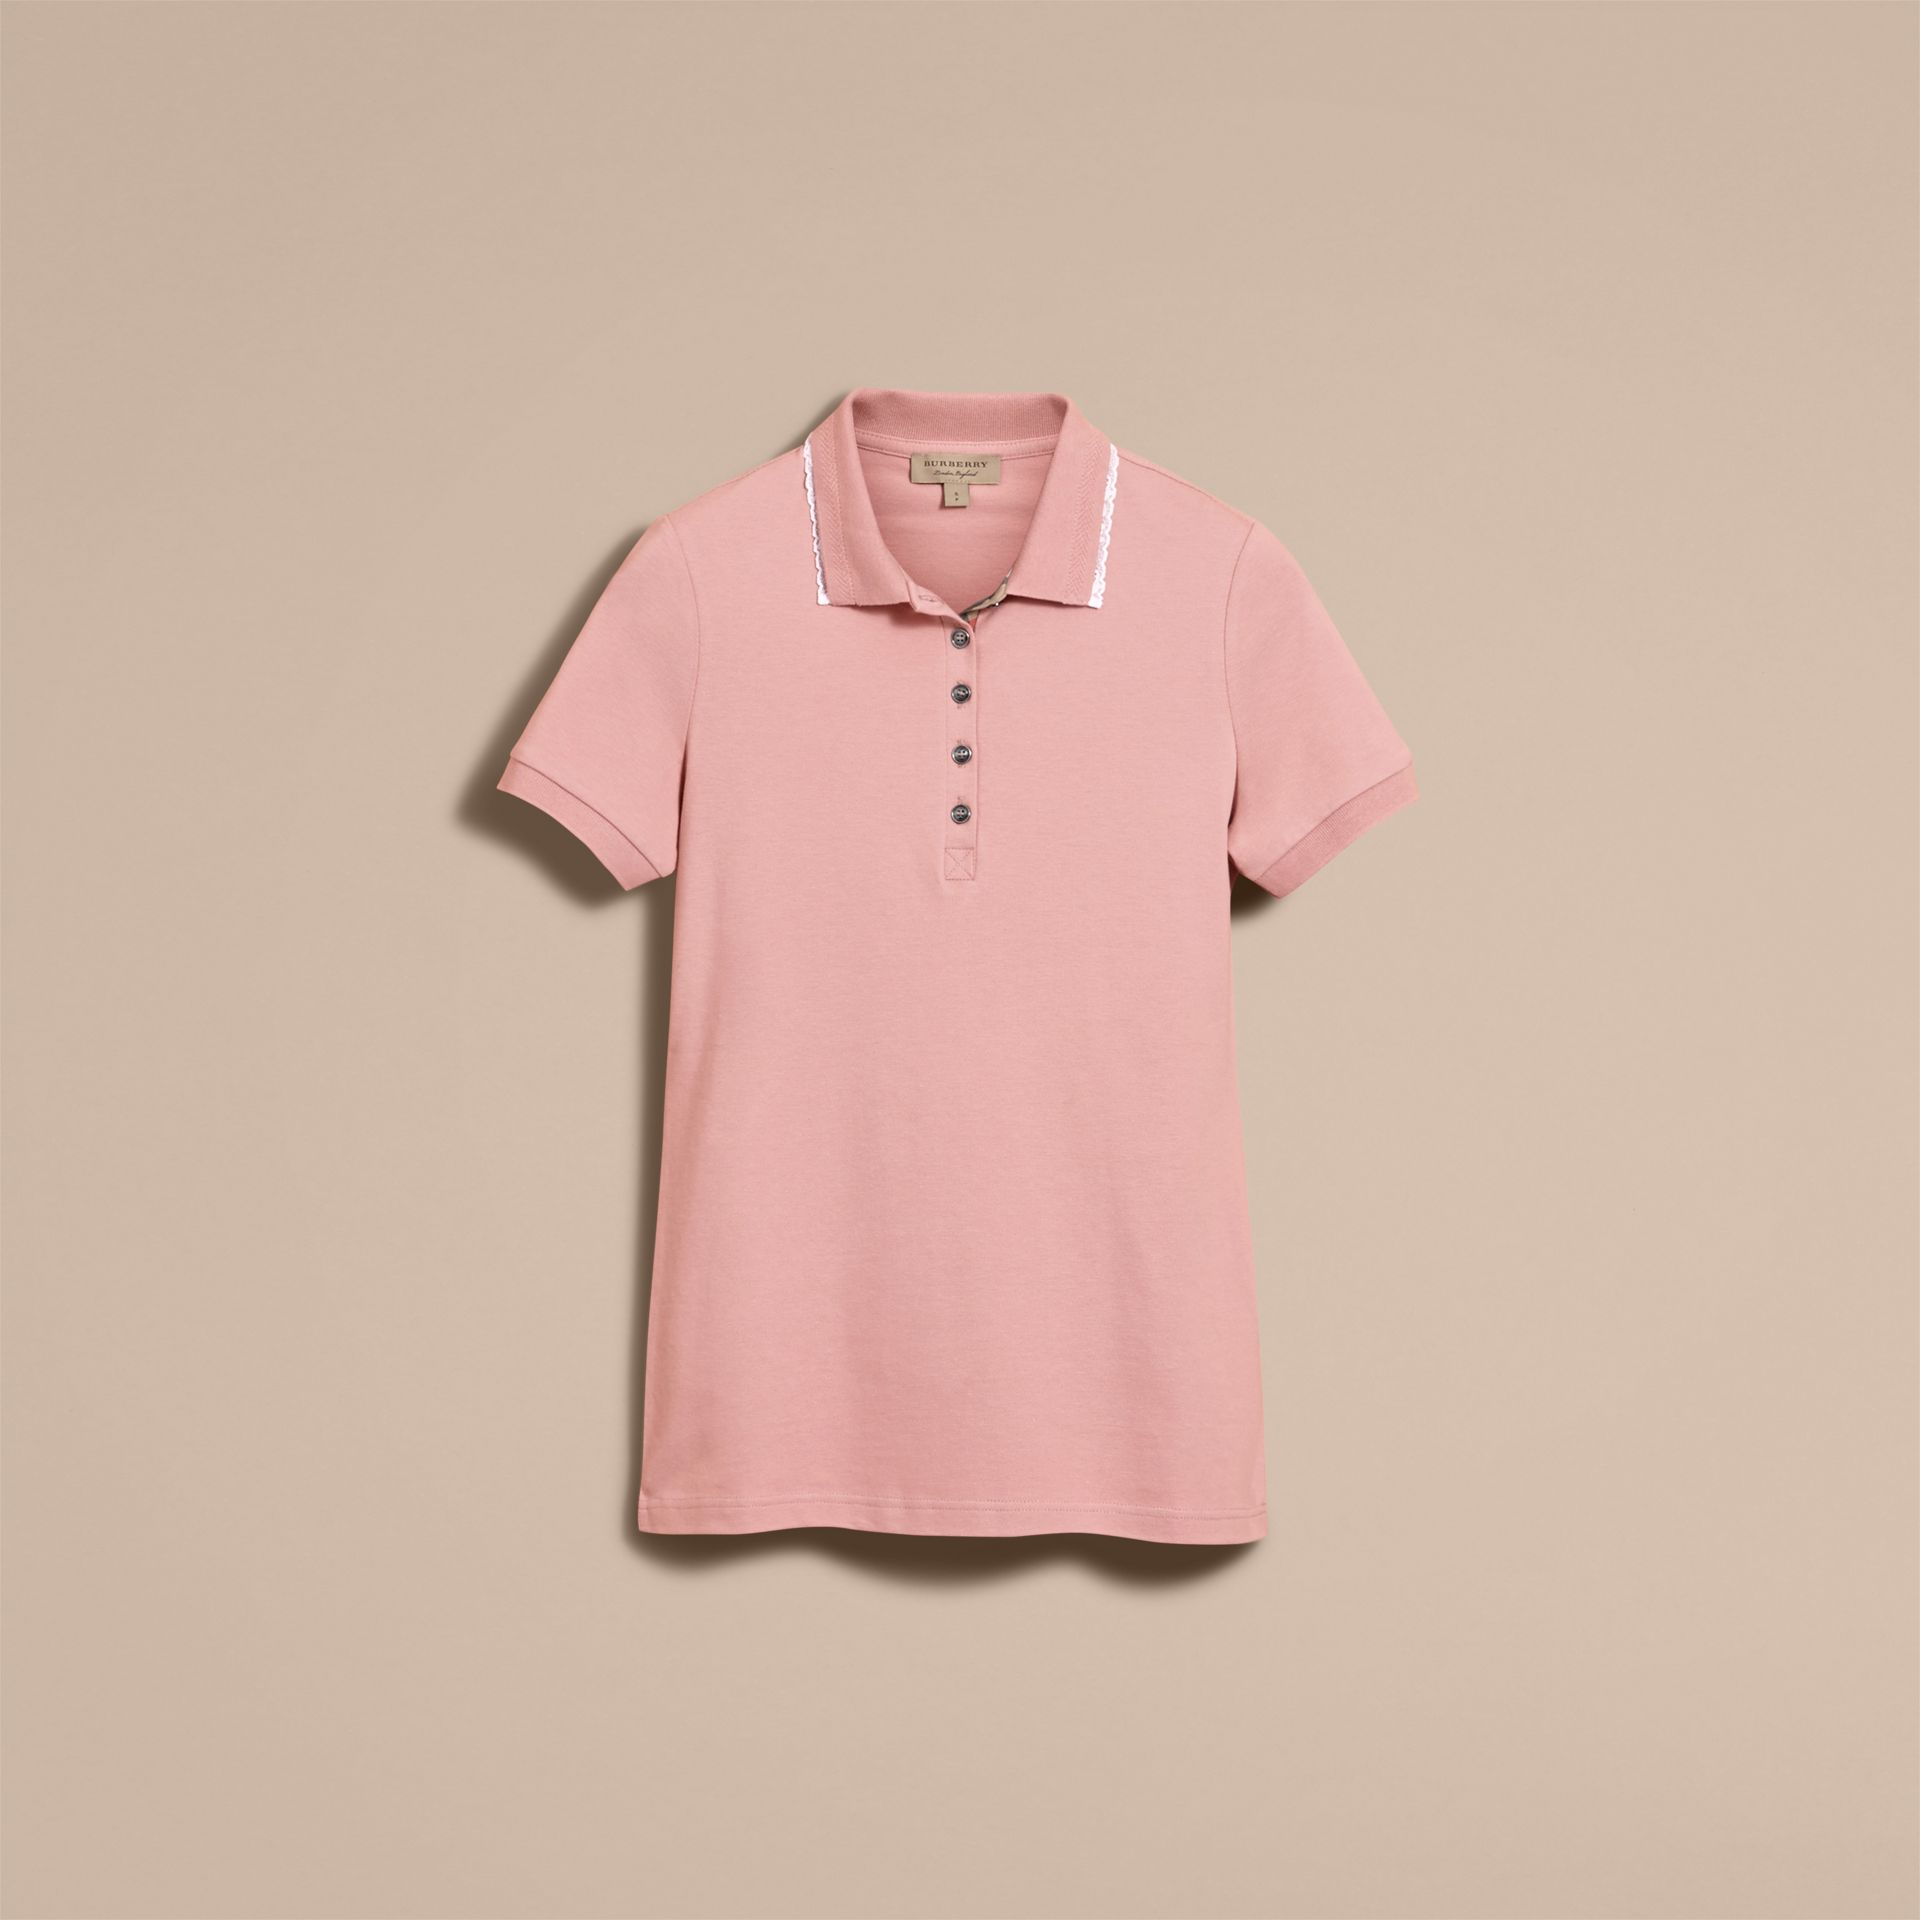 Lace Trim Cotton Blend Polo Shirt with Check Detail in Nude - Women | Burberry - gallery image 4